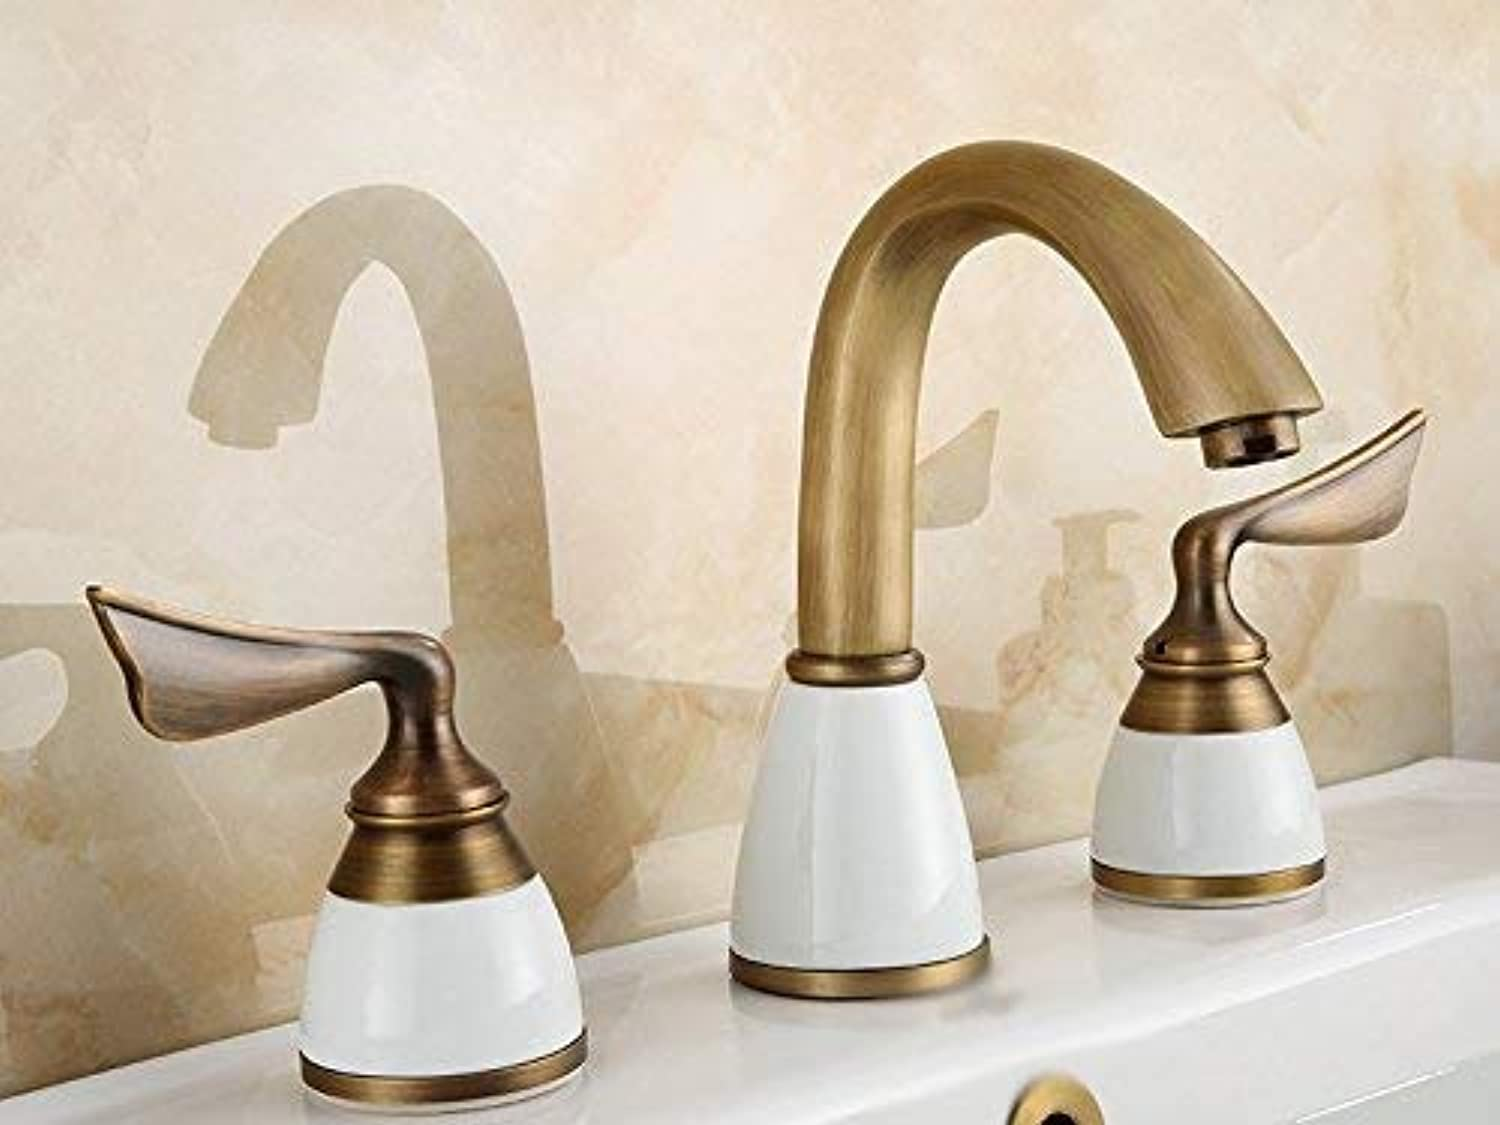 Oudan Copper European Style Retro Styleand Hot and Cold Sink Three-Hole Sink Taps